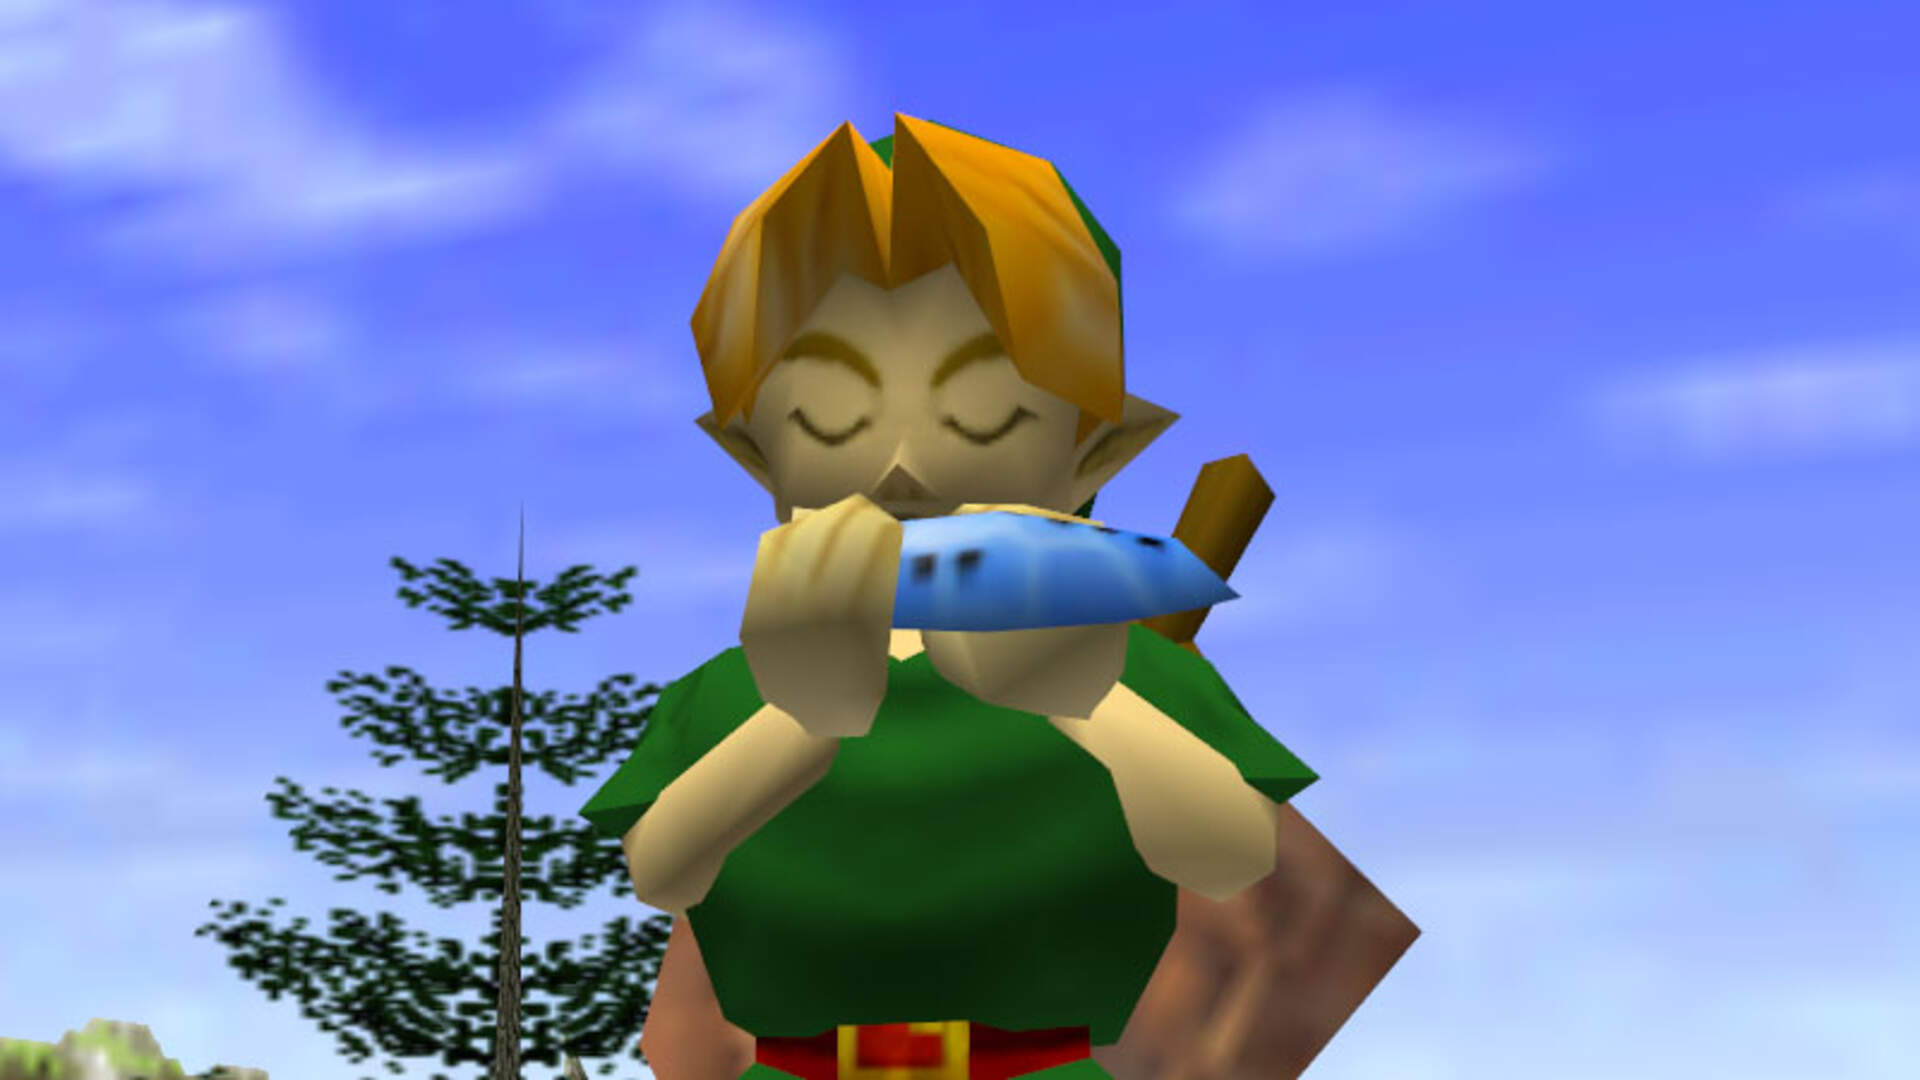 Ocarina of Time Speedruns Are Getting So Fast, They Don't Even Need an Ocarina